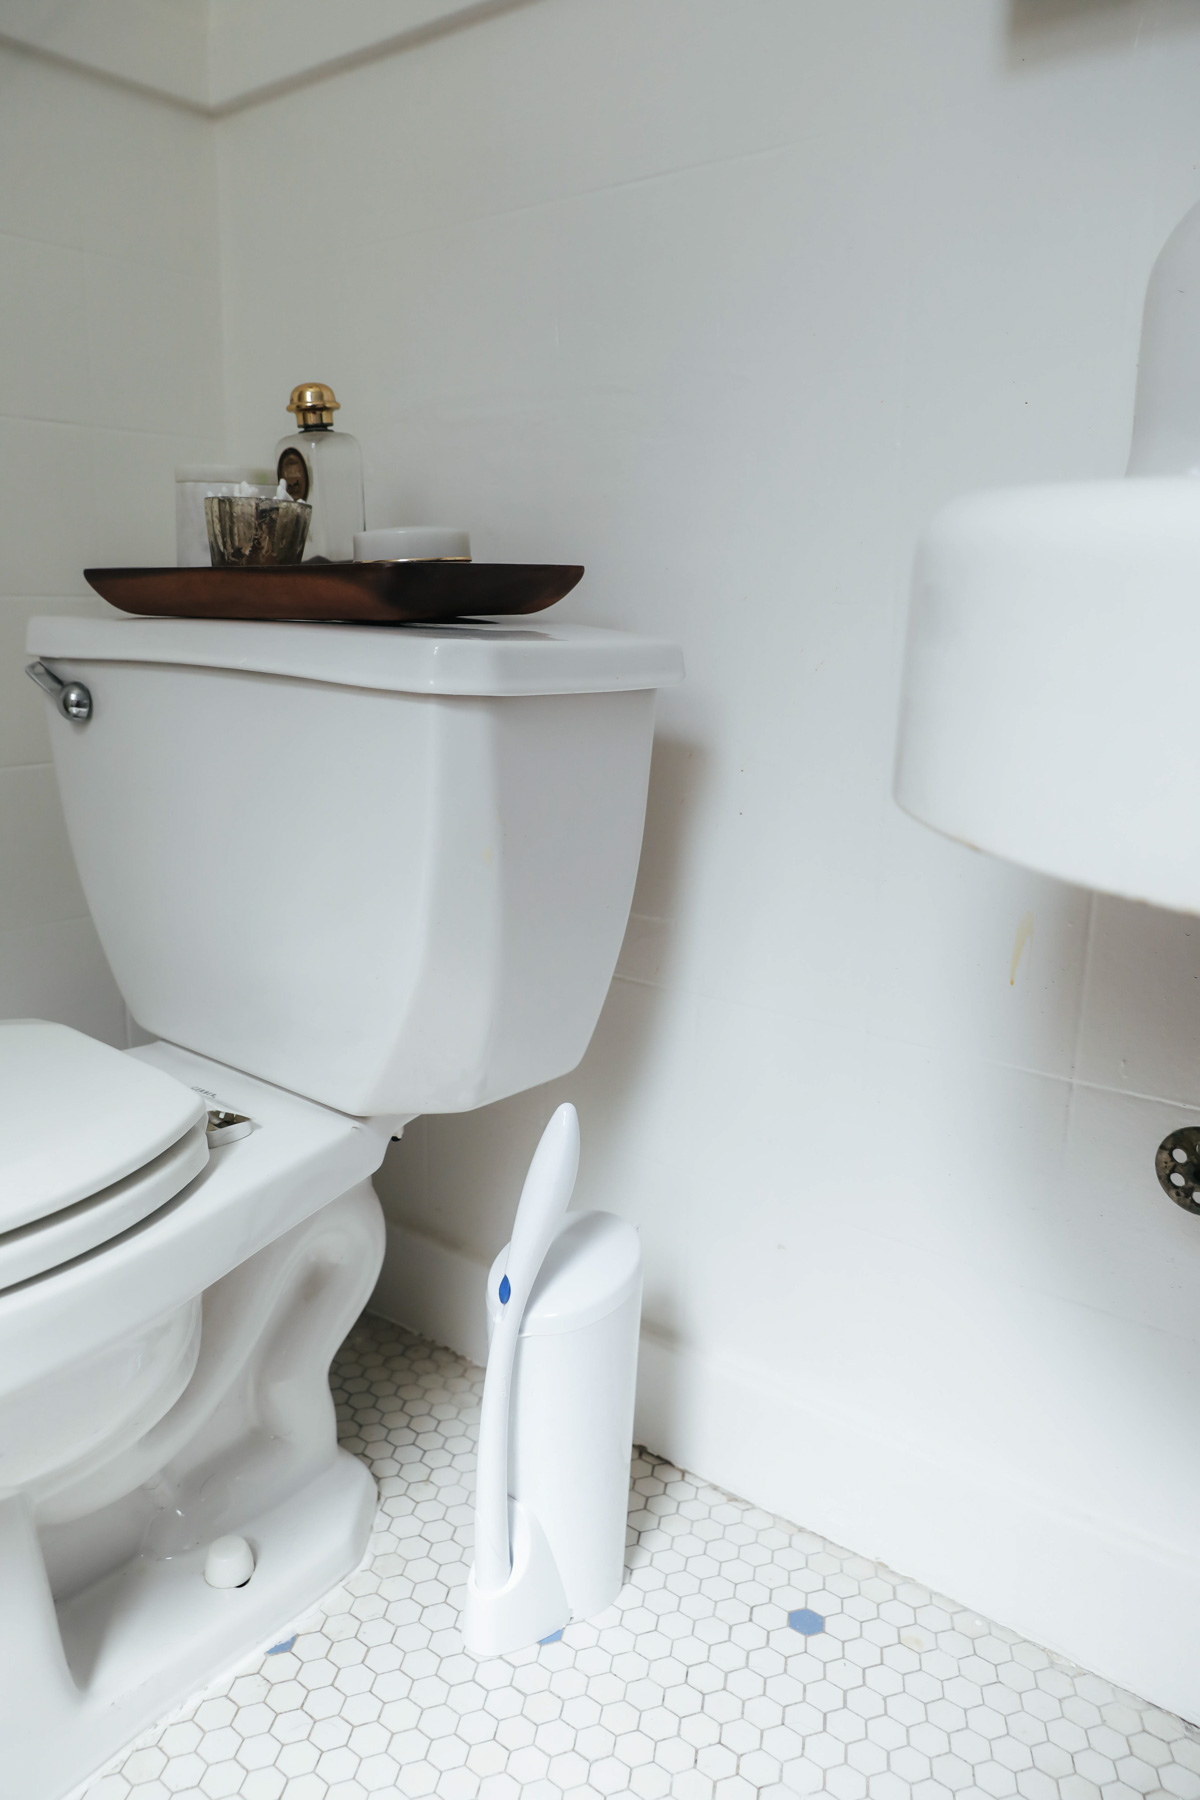 How to keep a clean bathroom -  Scrub Down The Toilet And Drop The Head In The Trash All Without Touching Anything With Your Hands Plus It S Nice And Sleek So It S Perfect For Small